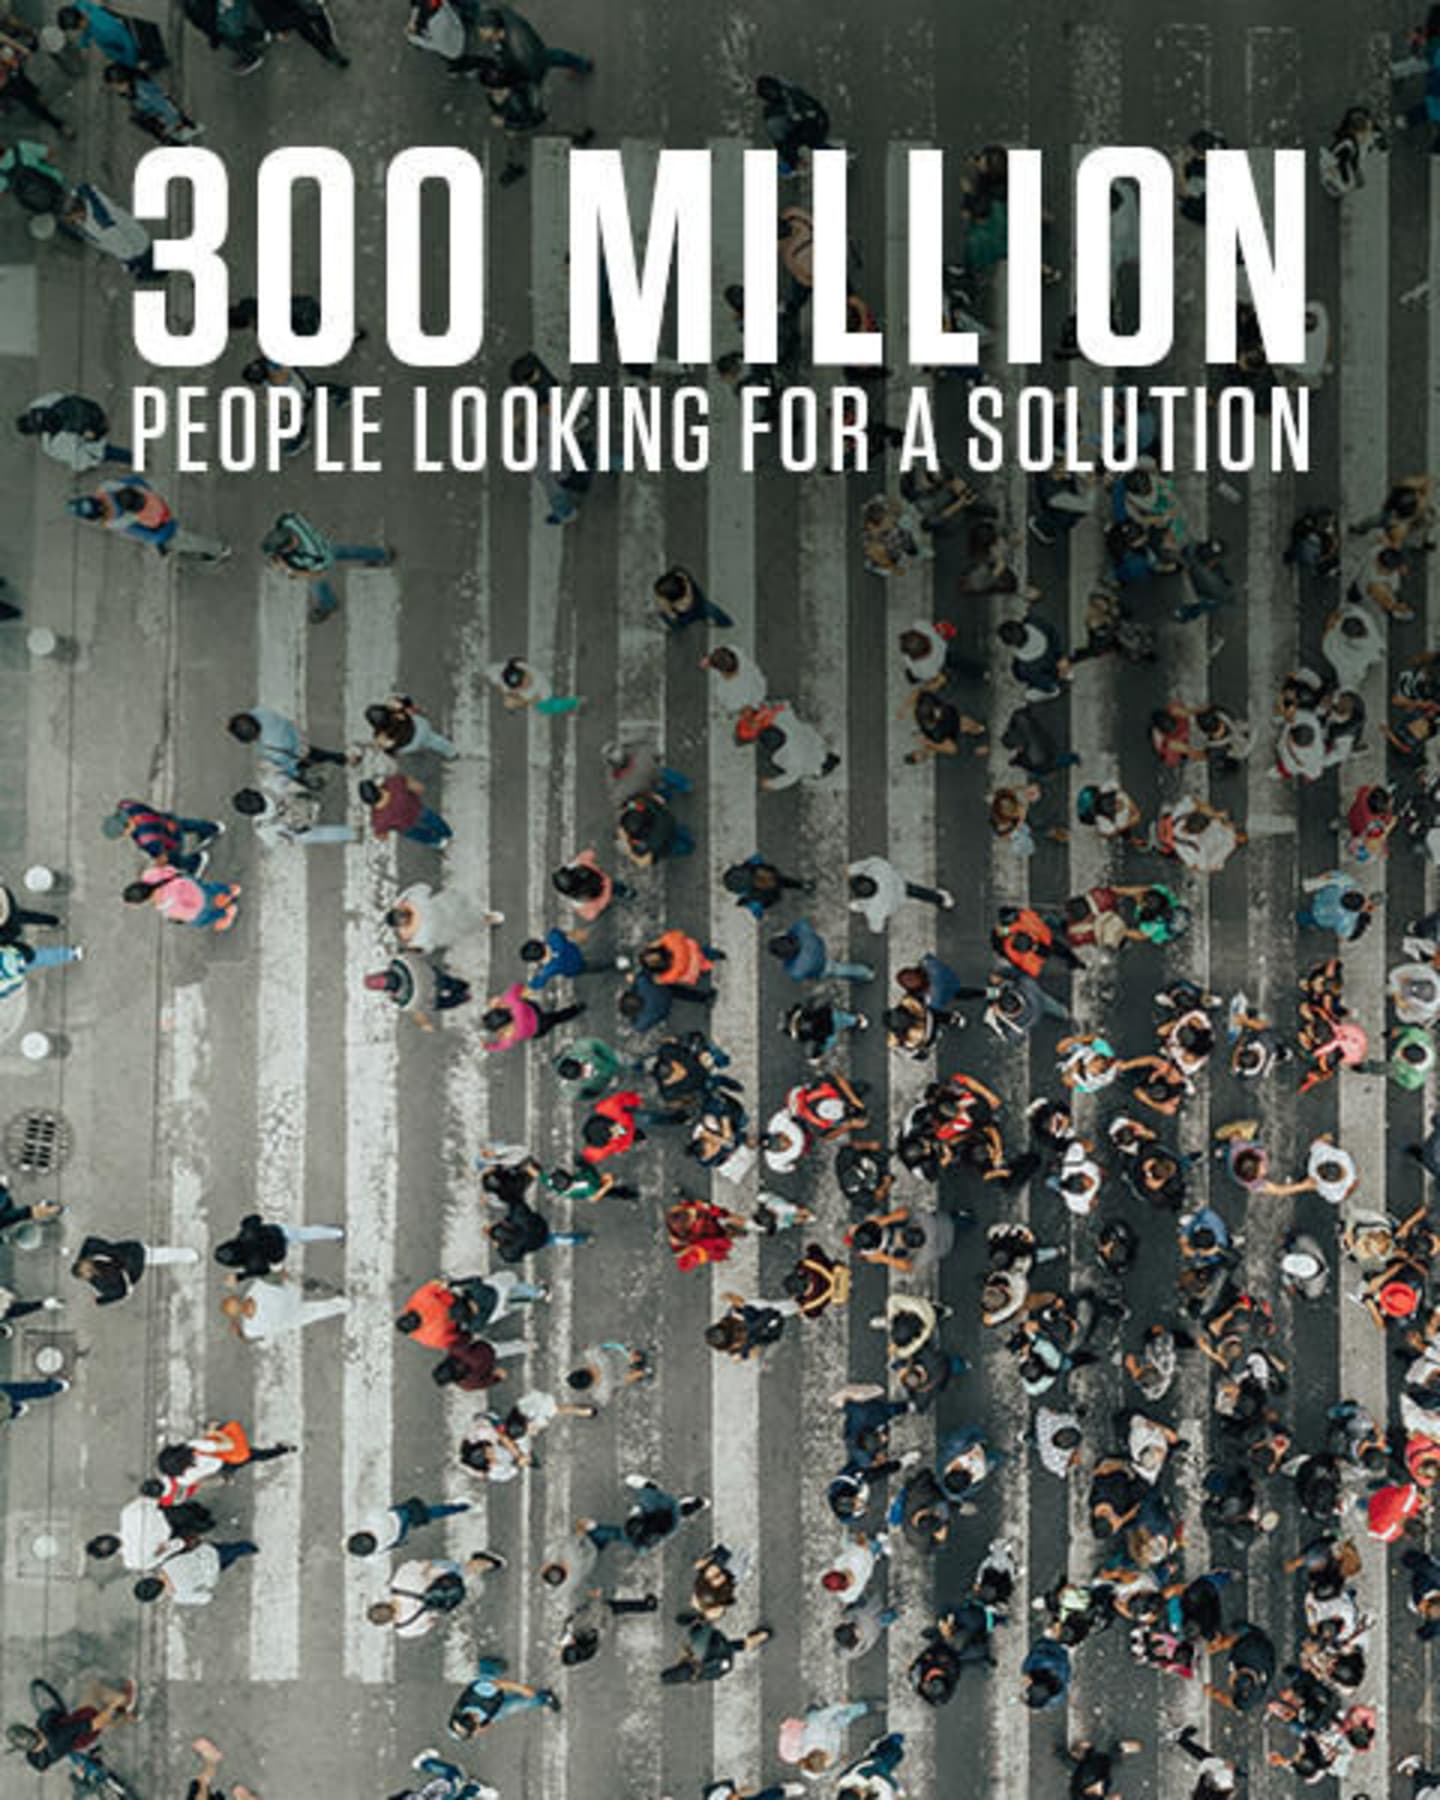 Crowd of people with the statement 300 million people looking for a solution